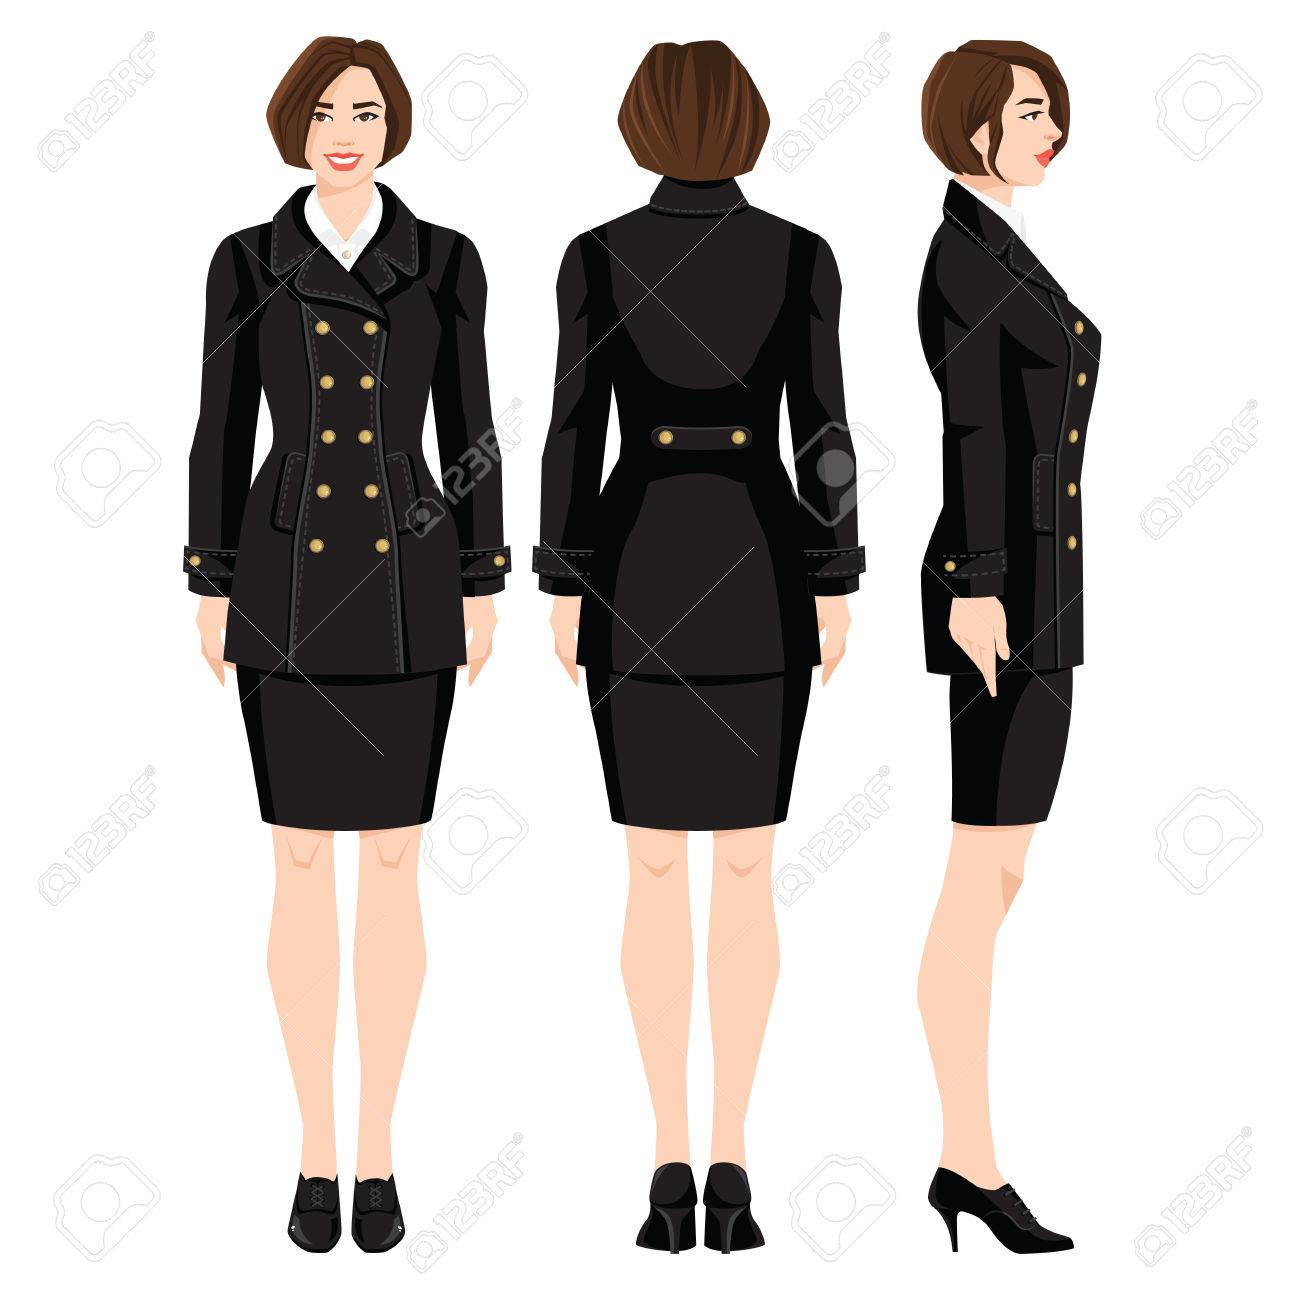 cddb0cf5d2b Vector - Vector illustration of professional girls in formal clothes  isolated on white background. Various turns woman s figure. Side view